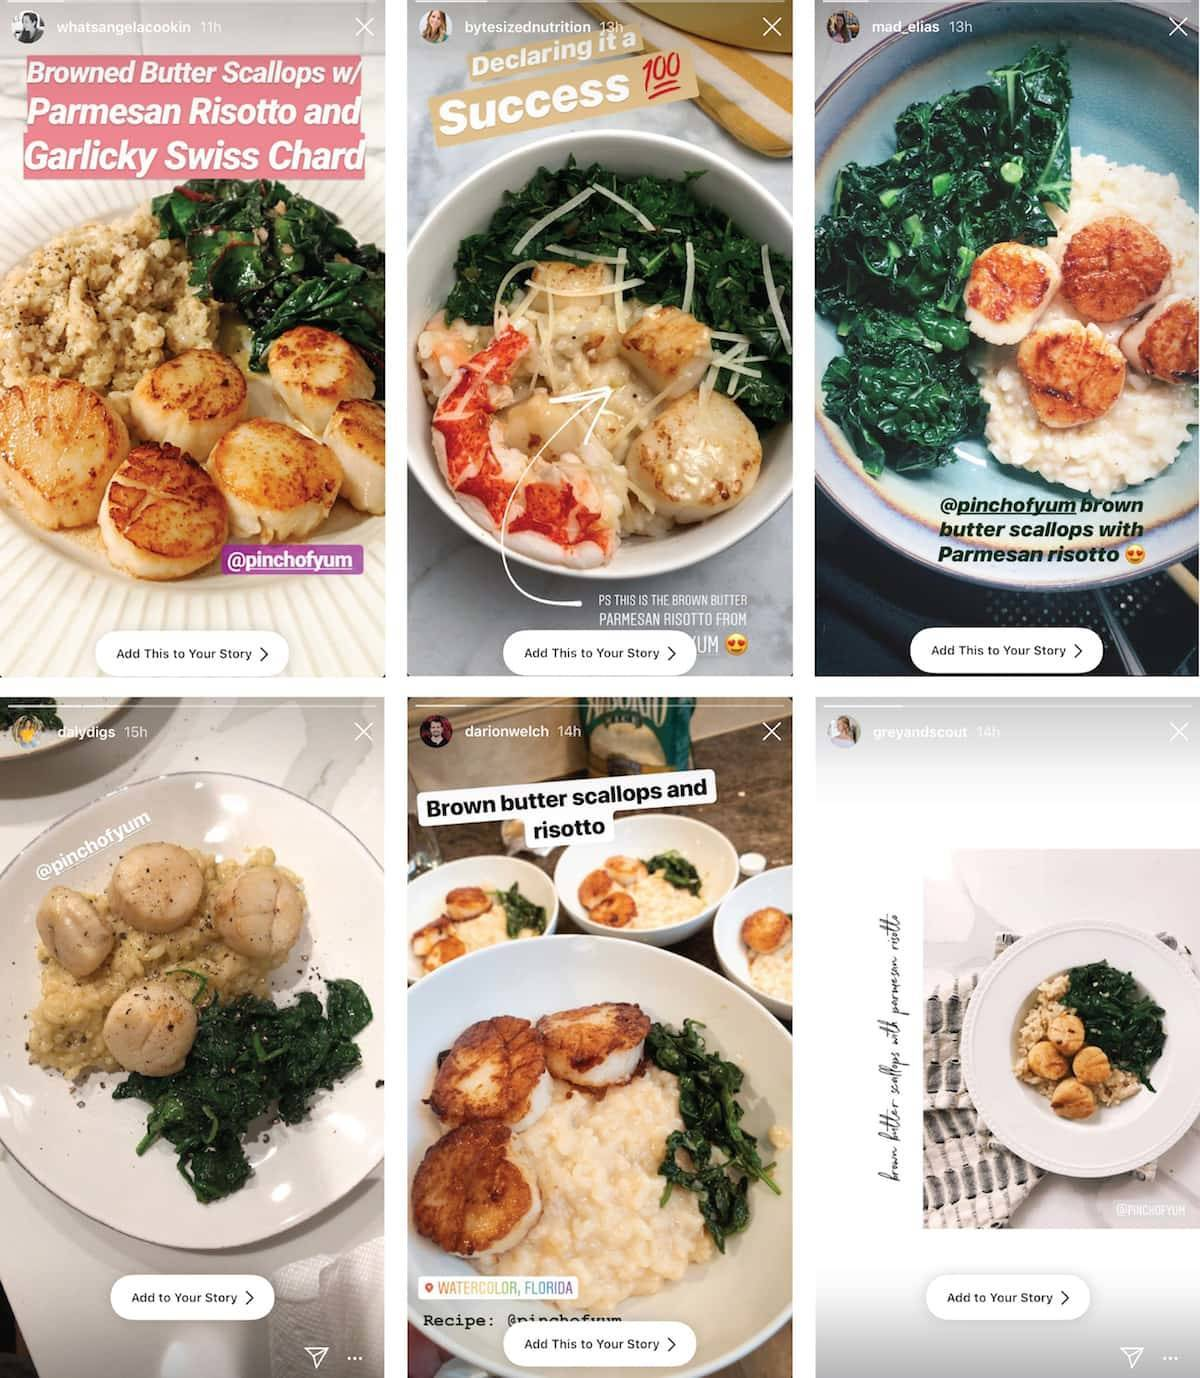 Instagram images of Brown Butter Scallops.